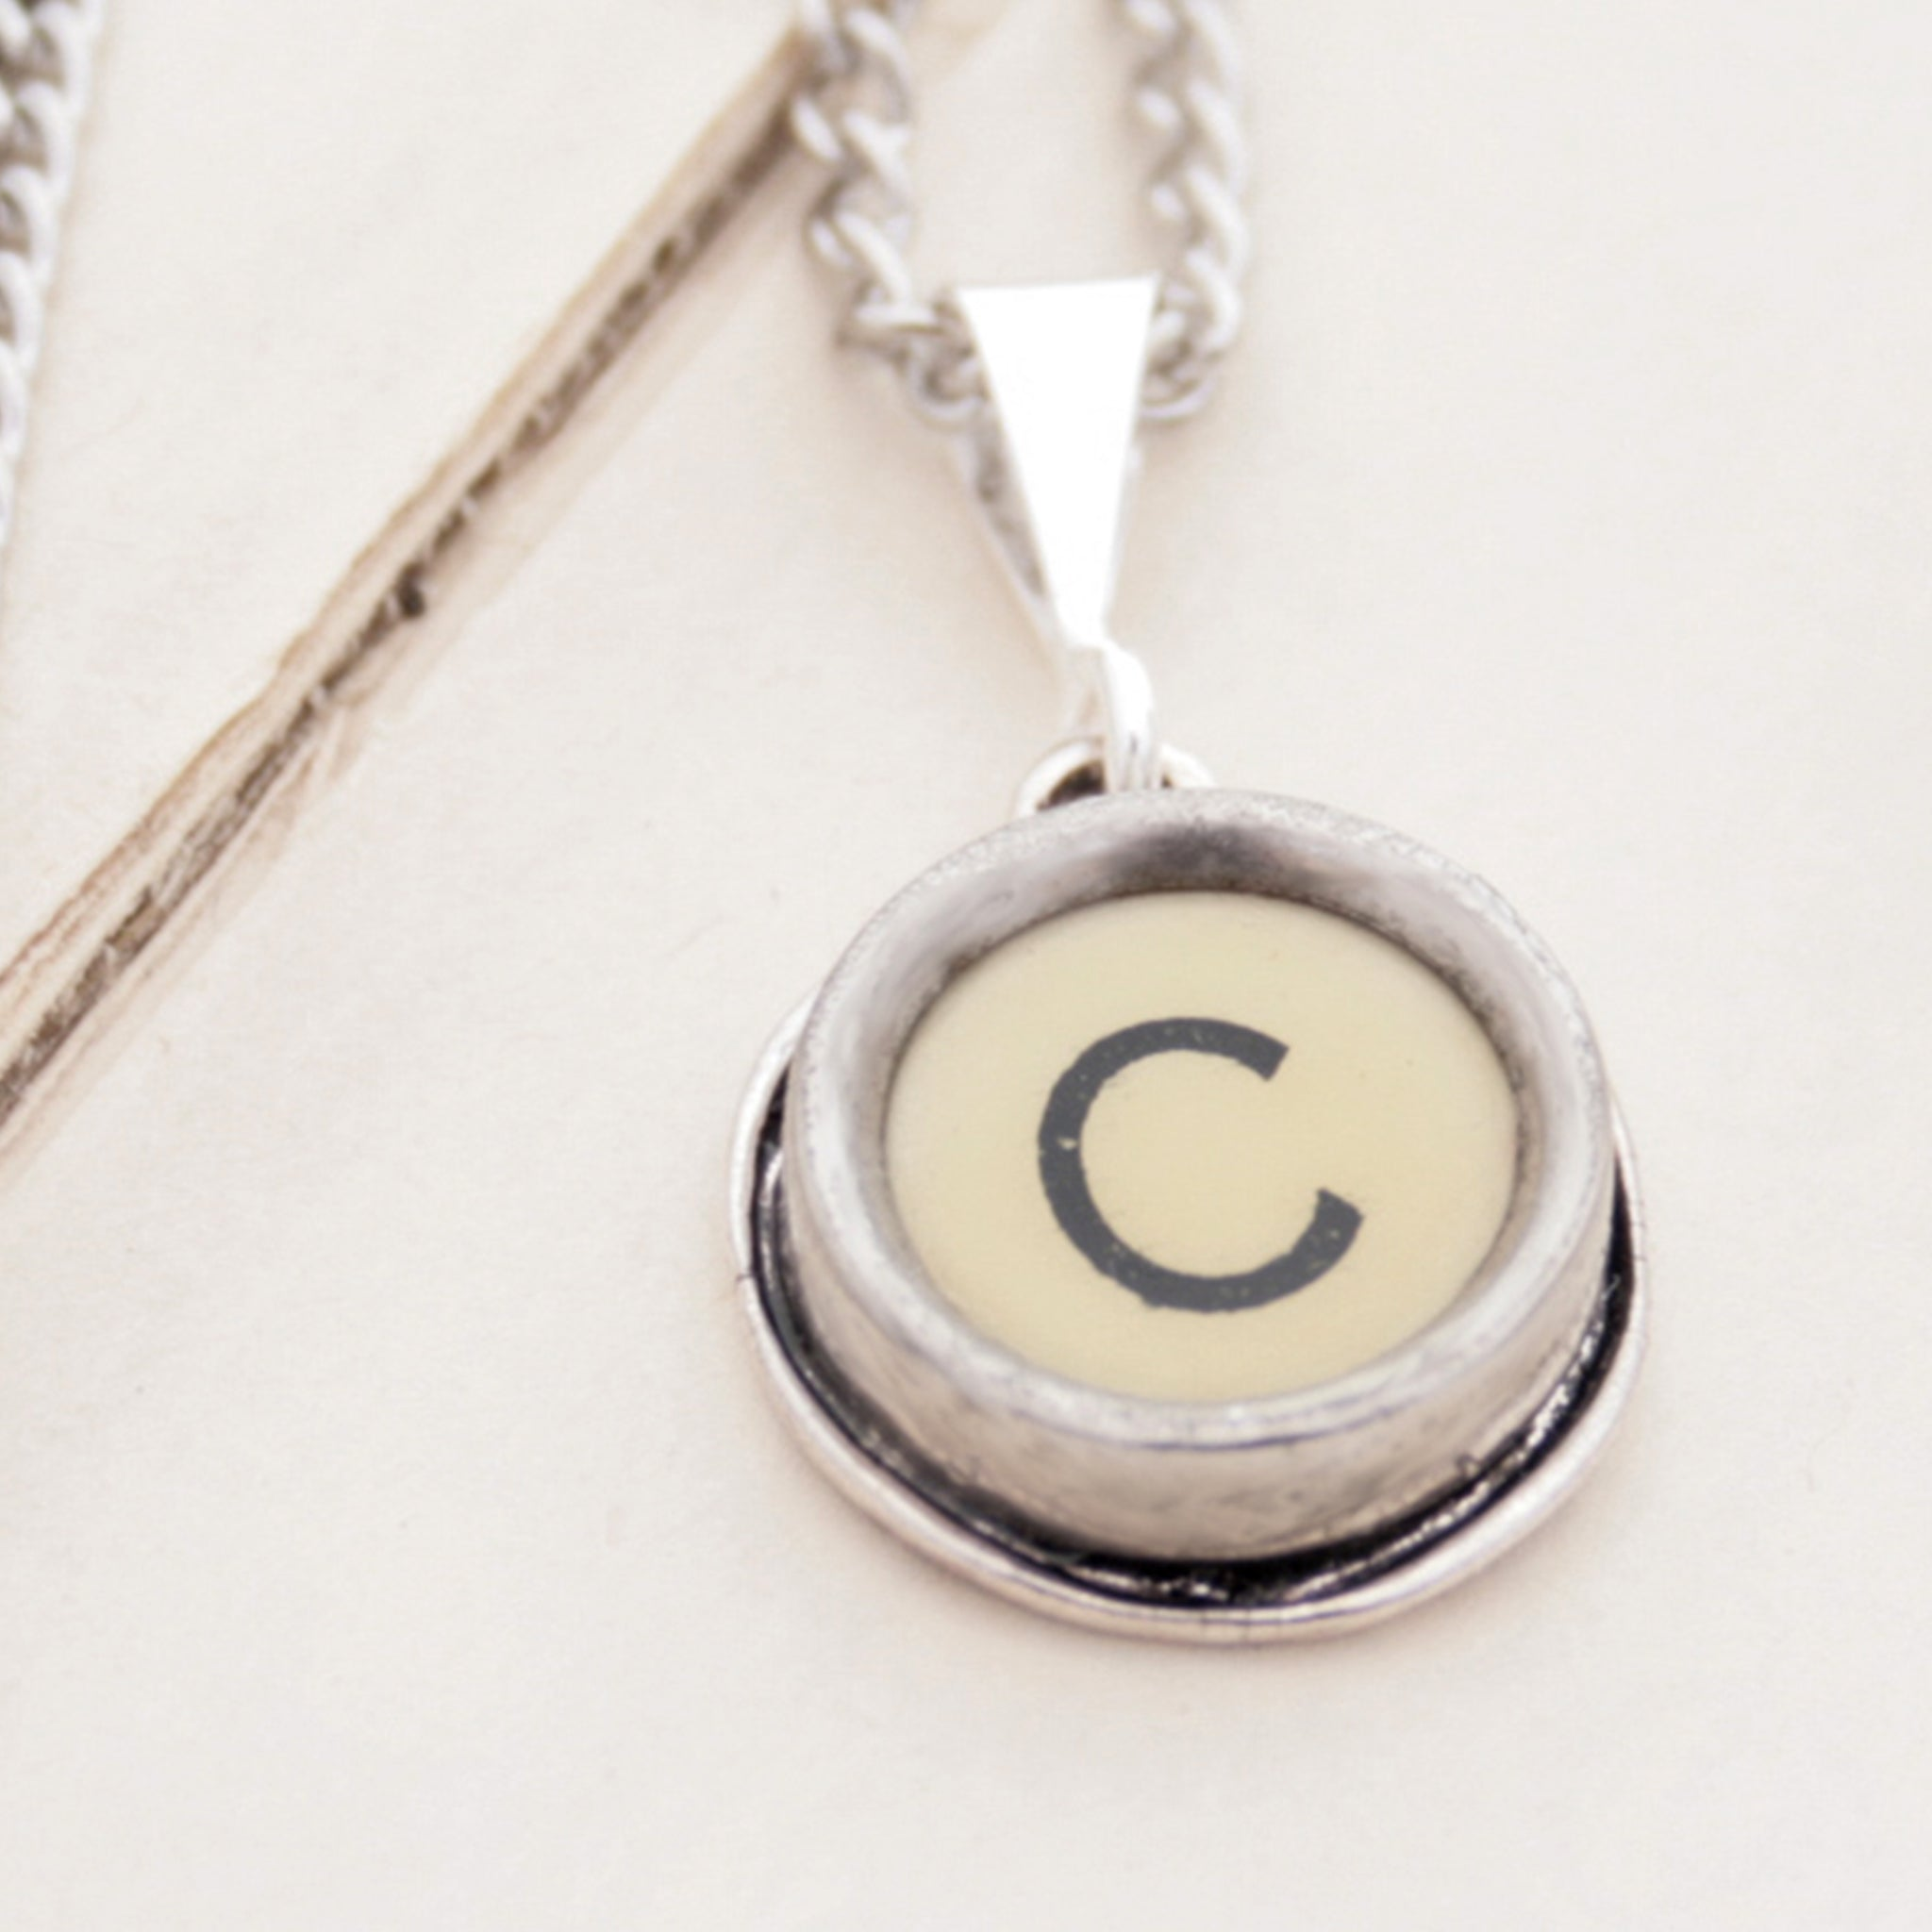 C letter necklace in ivory color made of vintage typewriter key